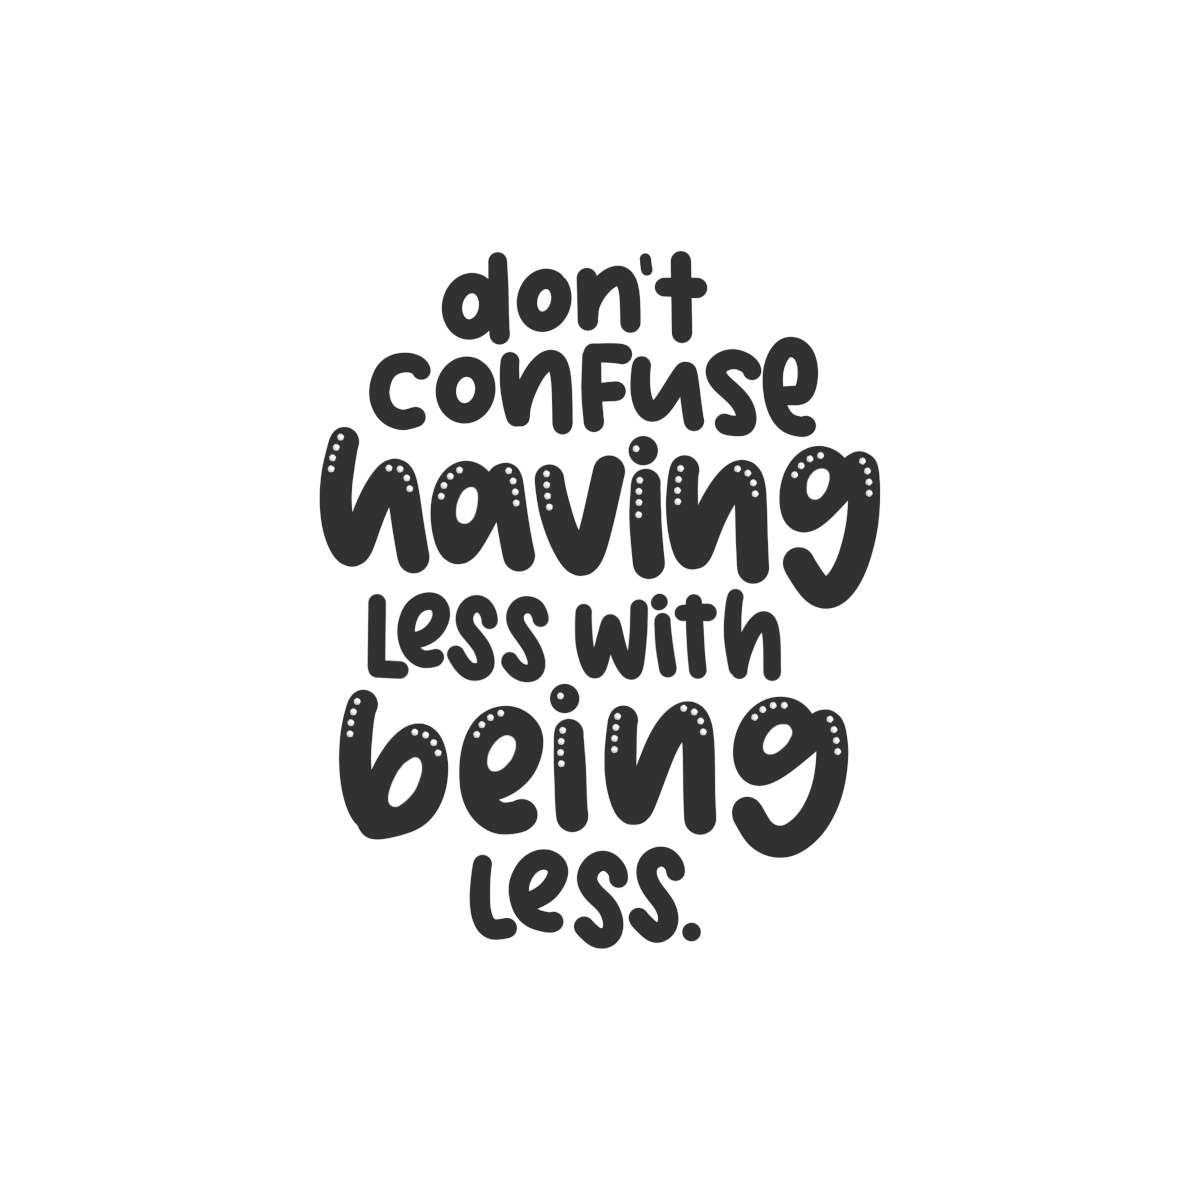 Dont confuse having less with being less